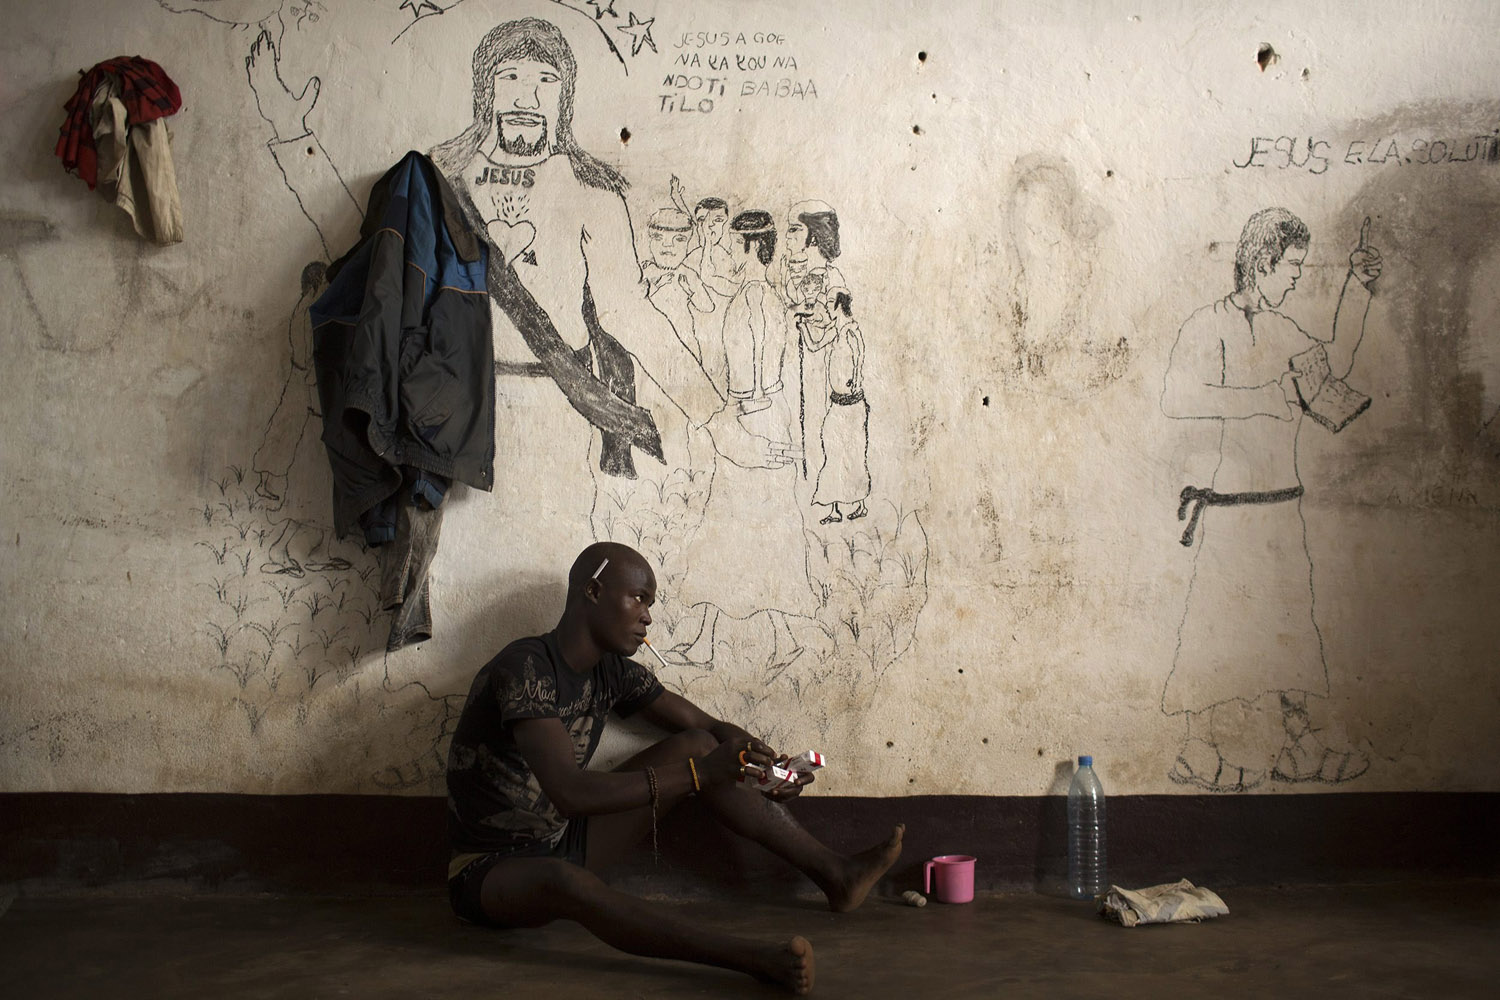 Mar. 21, 2014. A man sits next to a wall with graffiti in a cell of the central prison in the district of Wango, in the capital Bangui, Central African Republic.